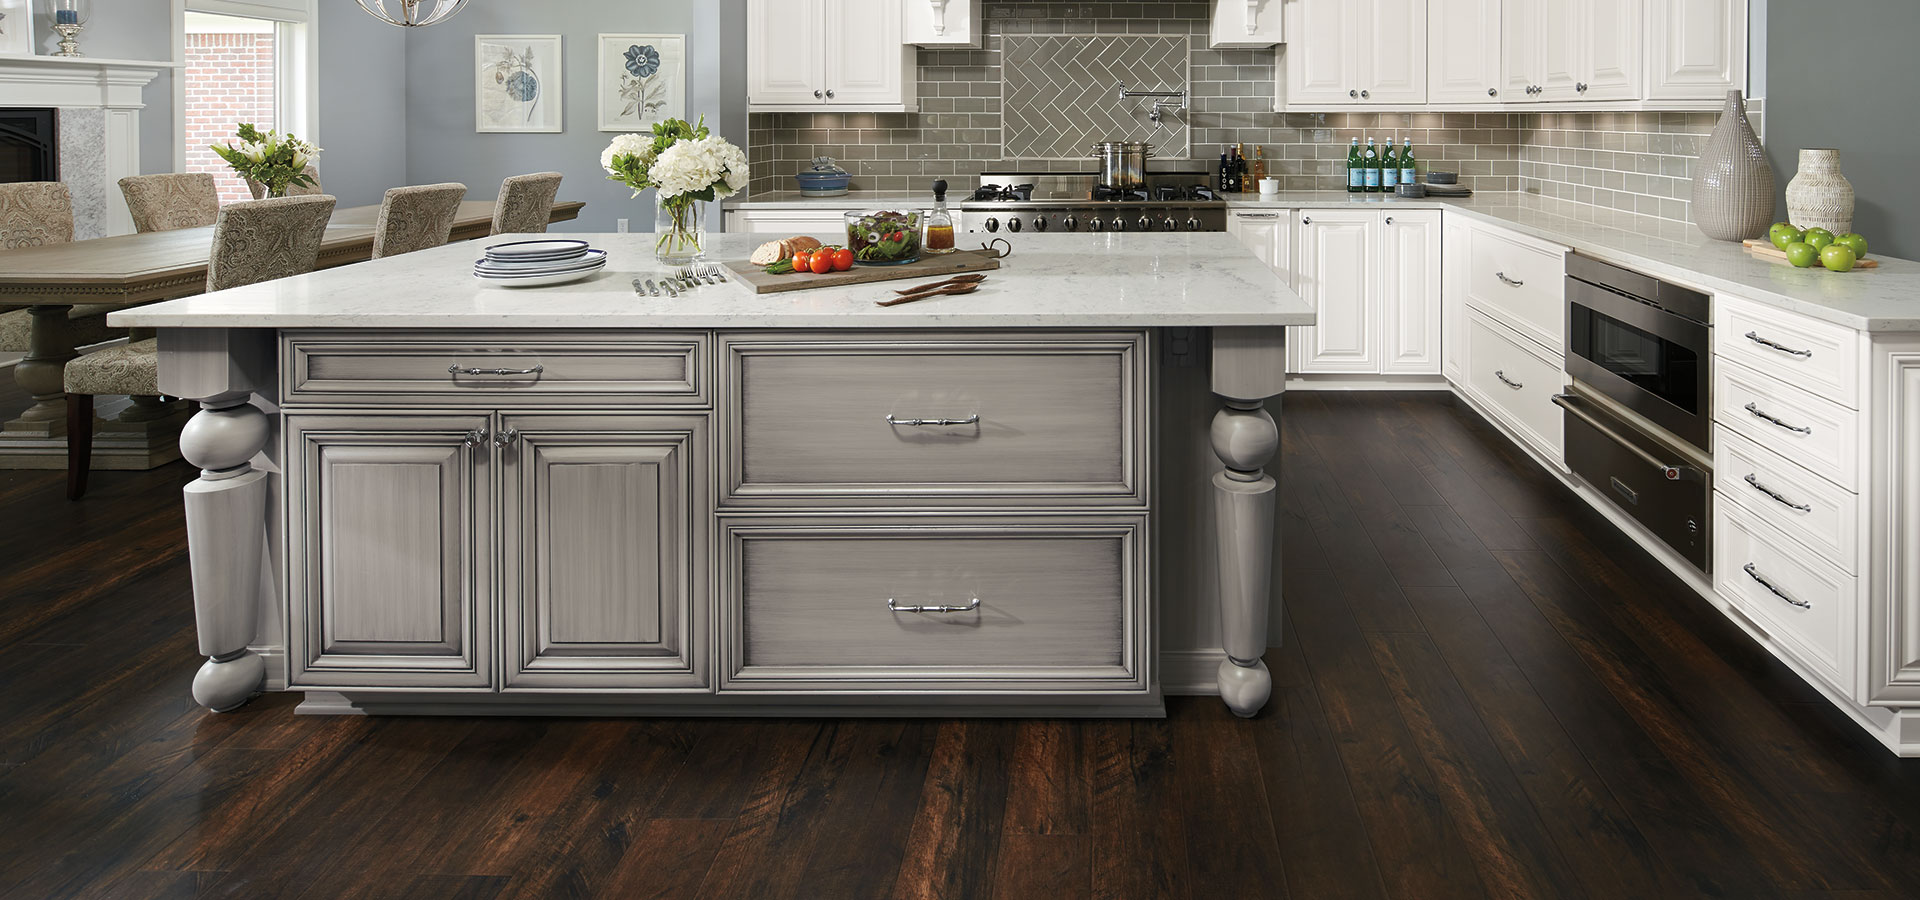 kitchen cabinets com slice rugs mats custom bathroom cabinetry omega artesimwimdovebbrsh